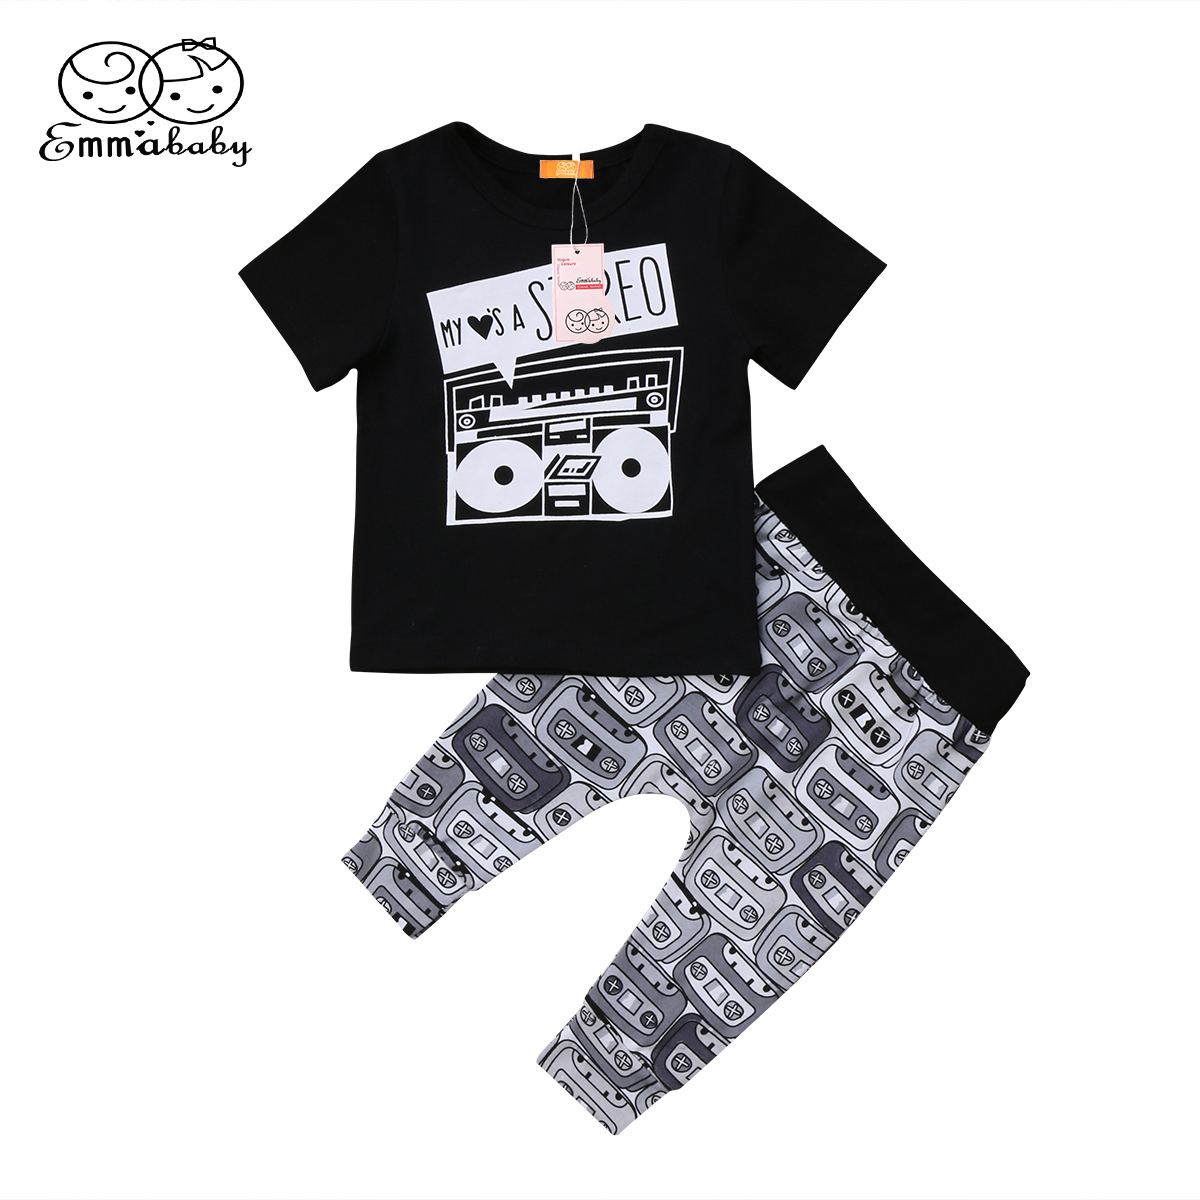 2018 new arrival fashion babies print outfit set Newborn Kids Infant Boy Girl short sleeve T-shirt Pants Leggings Outfit Clothes